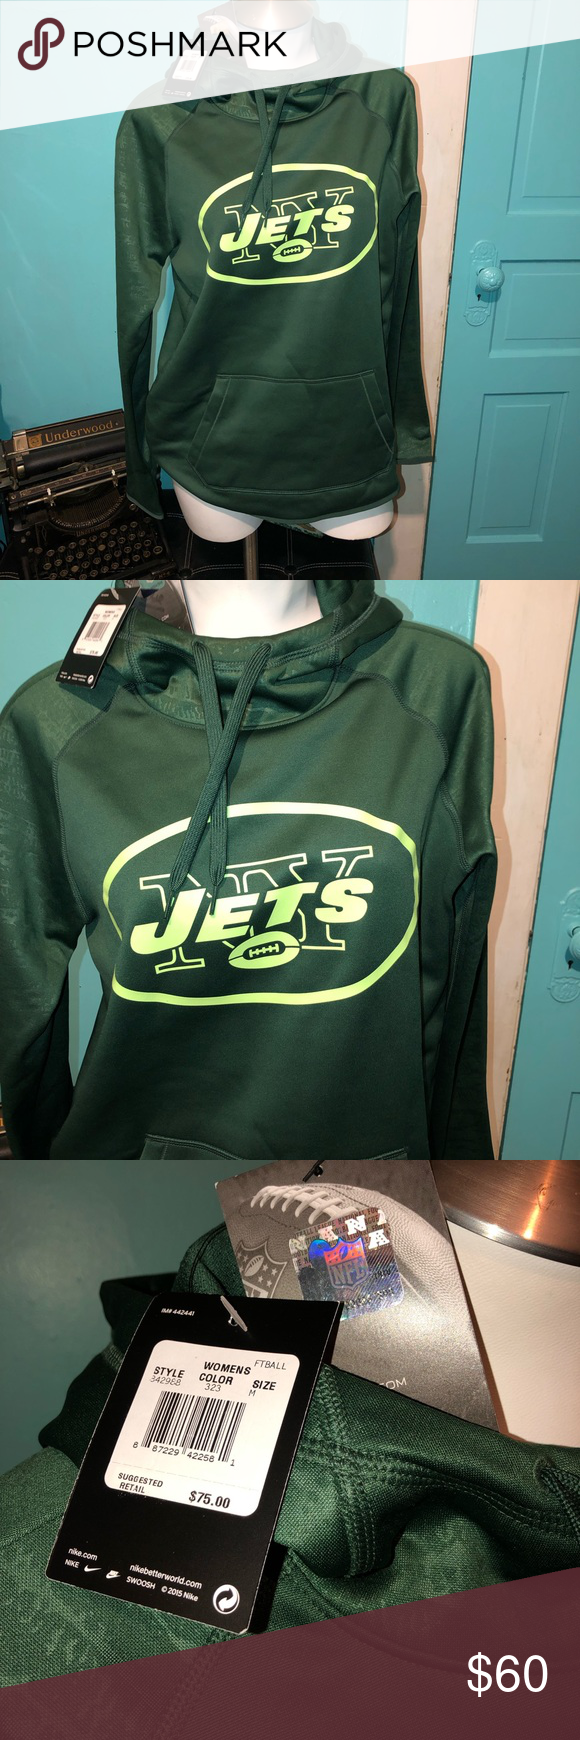 """a85c16fc Nike """"NY JETS"""" hoodie Brand new with tags, green in color. Size ..."""